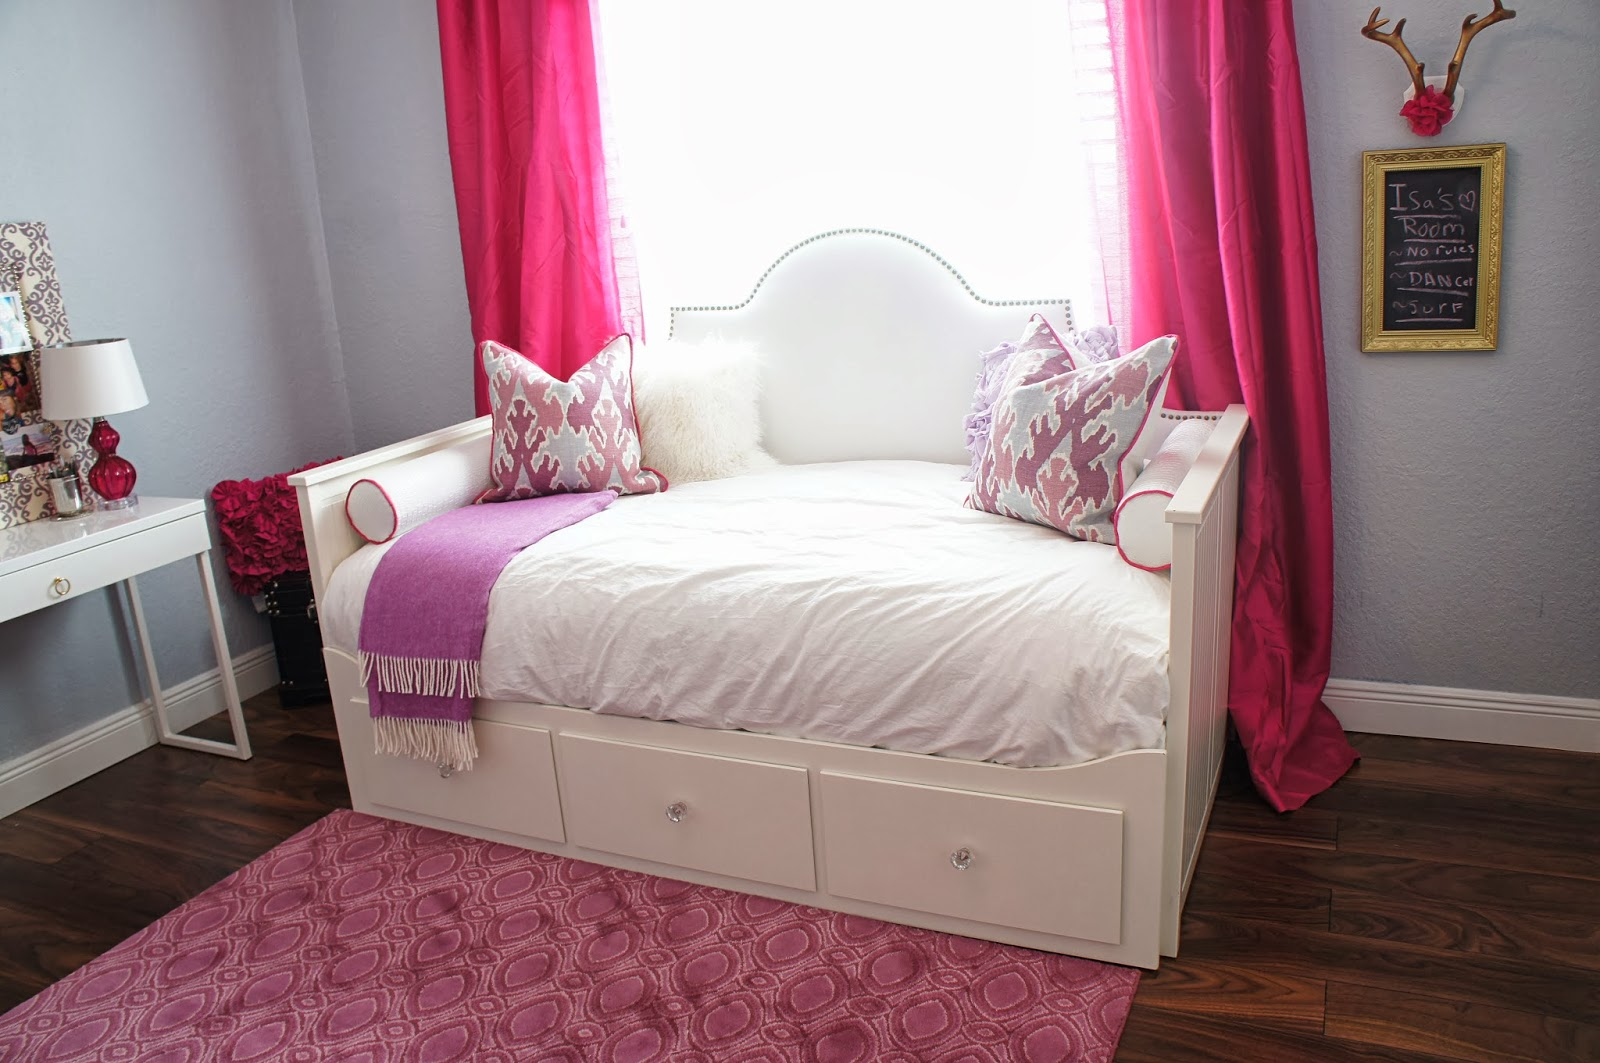 Ikea day beds hemnes home design ideas - Ikea Hemnes Day Bed With Upholstered Headboard Diy